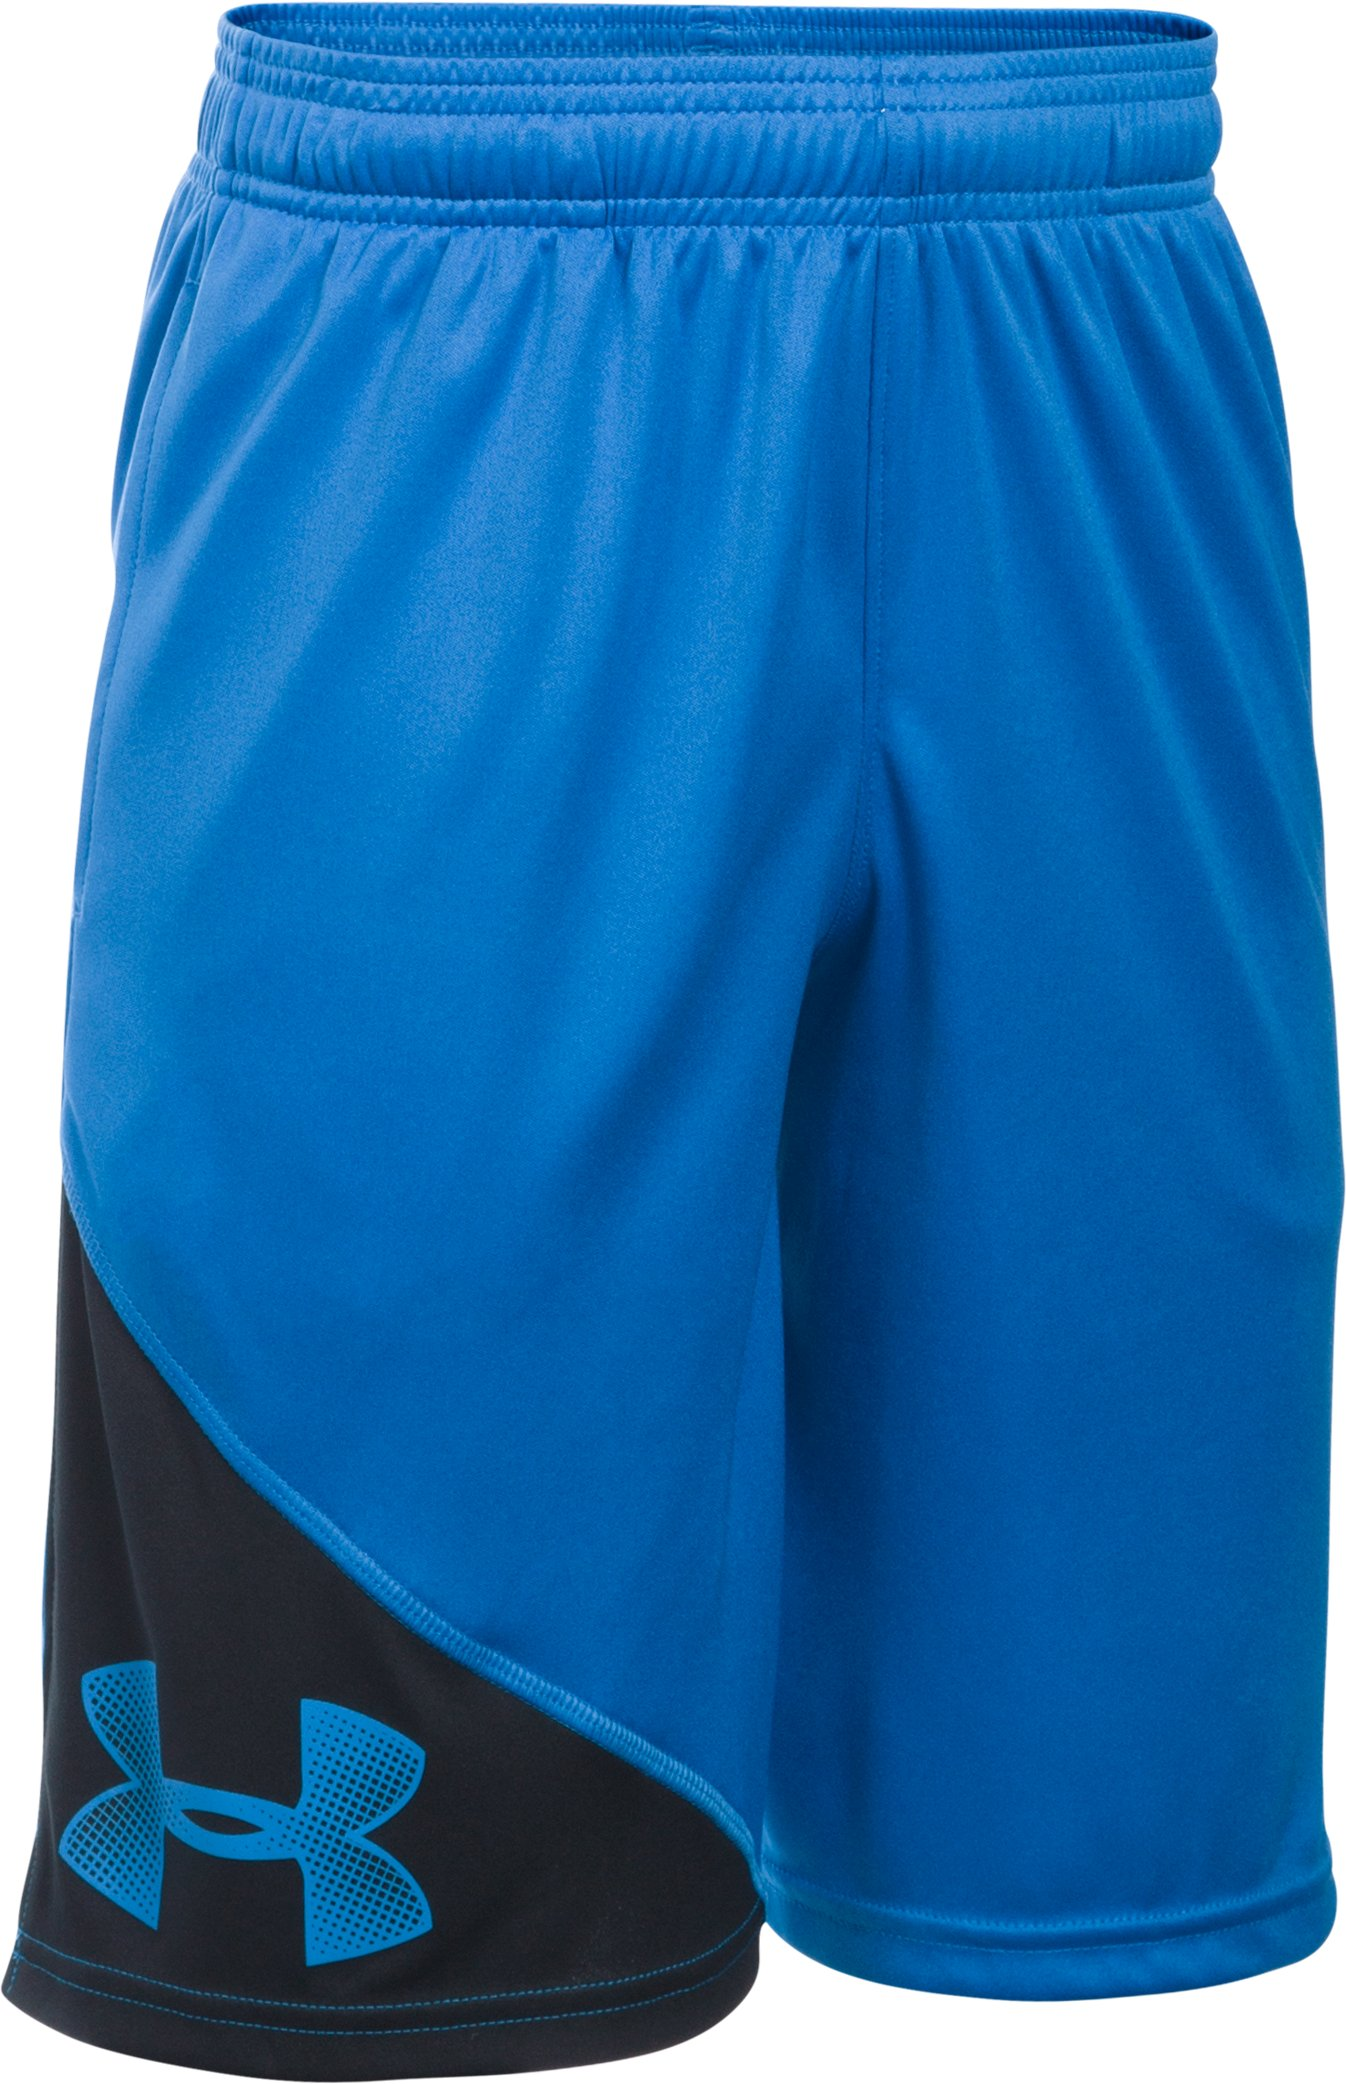 Boys' UA Tech™ Prototype Shorts, ULTRA BLUE, undefined